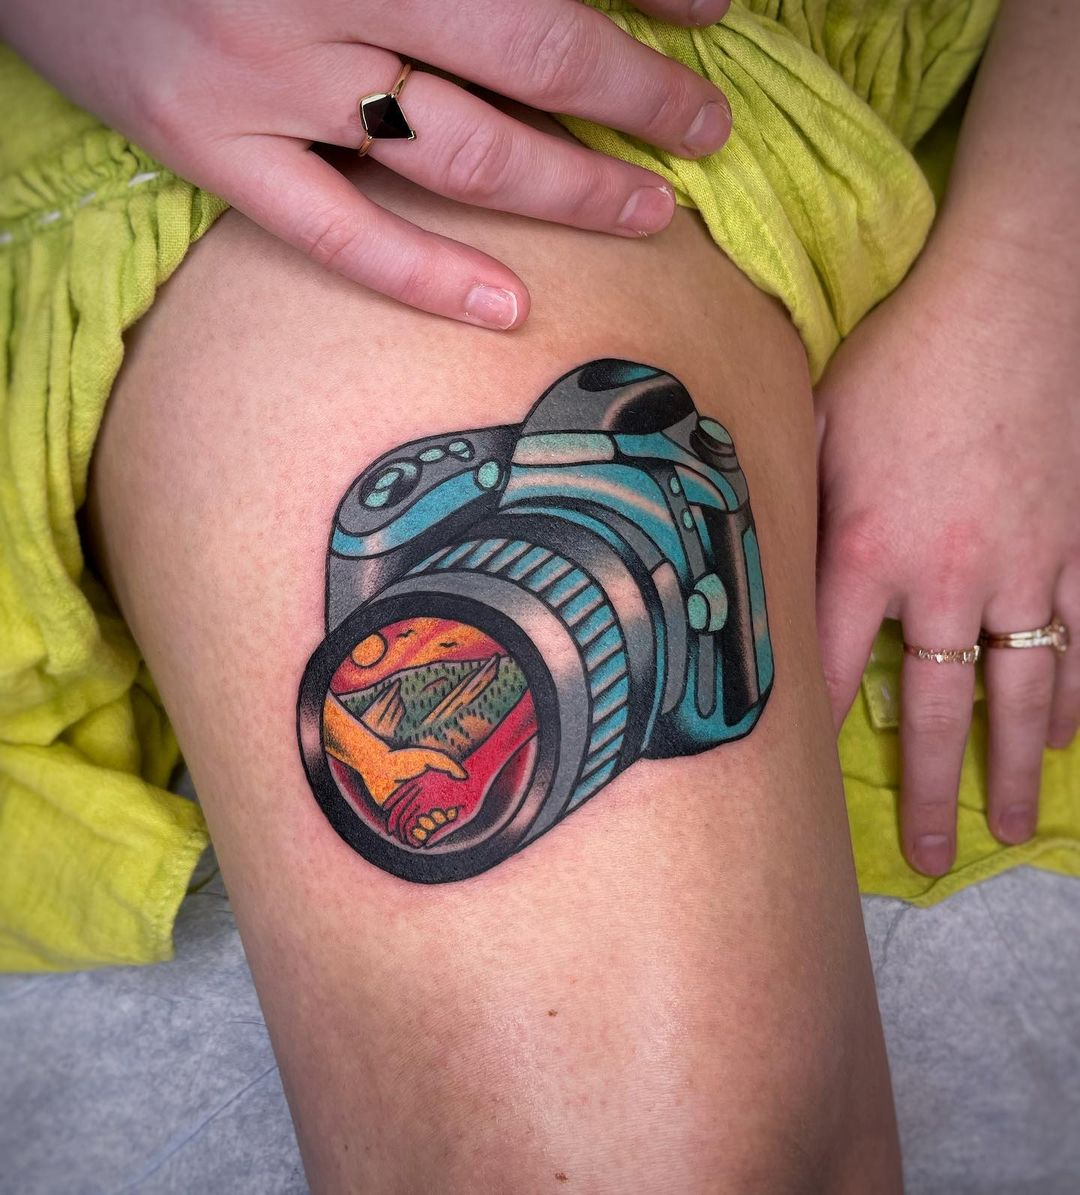 25 tattoos by female tattoo artists that prove ink is no man's game